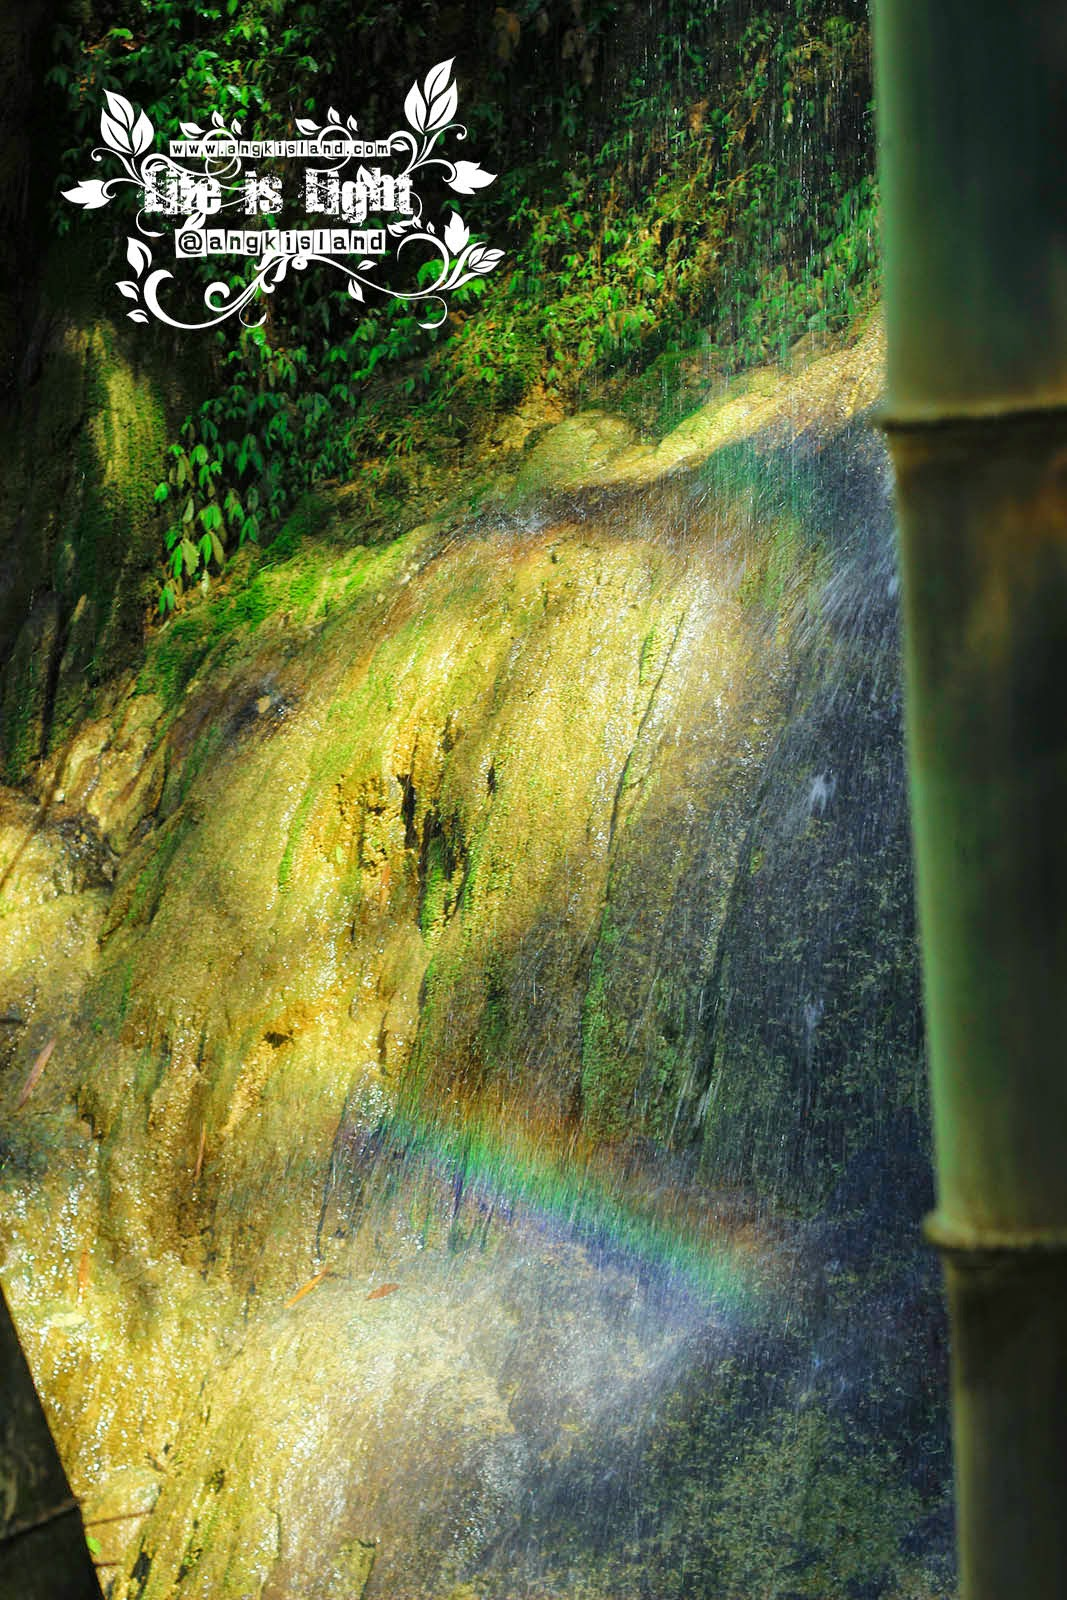 Rainbow at Air Terjun Sigembor